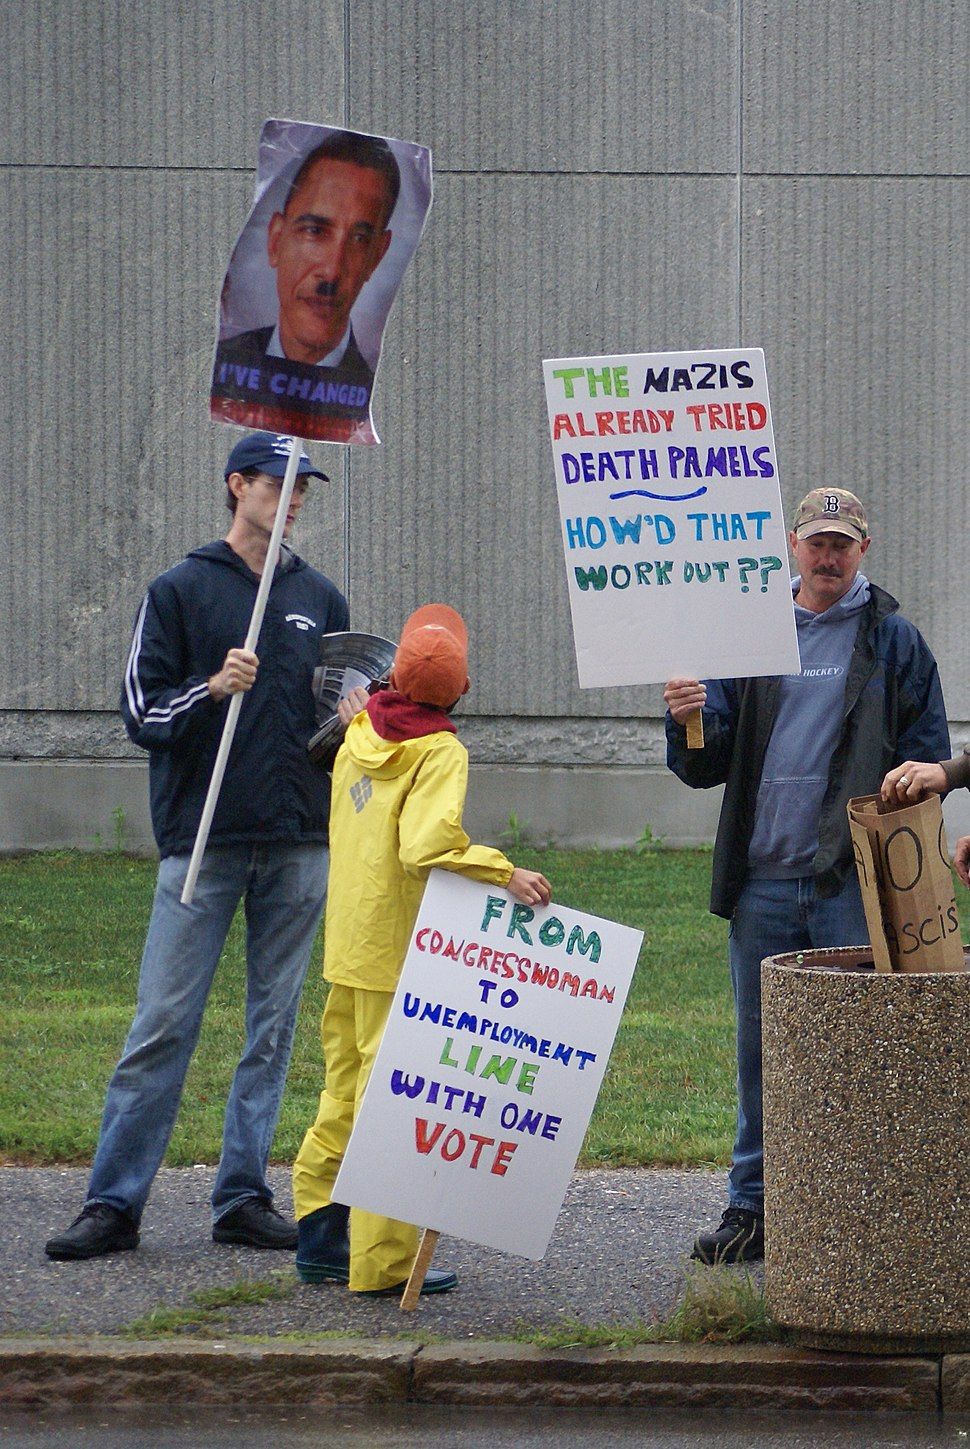 Protest banners with picture of Obama with Hitler mustache and a death panel sign